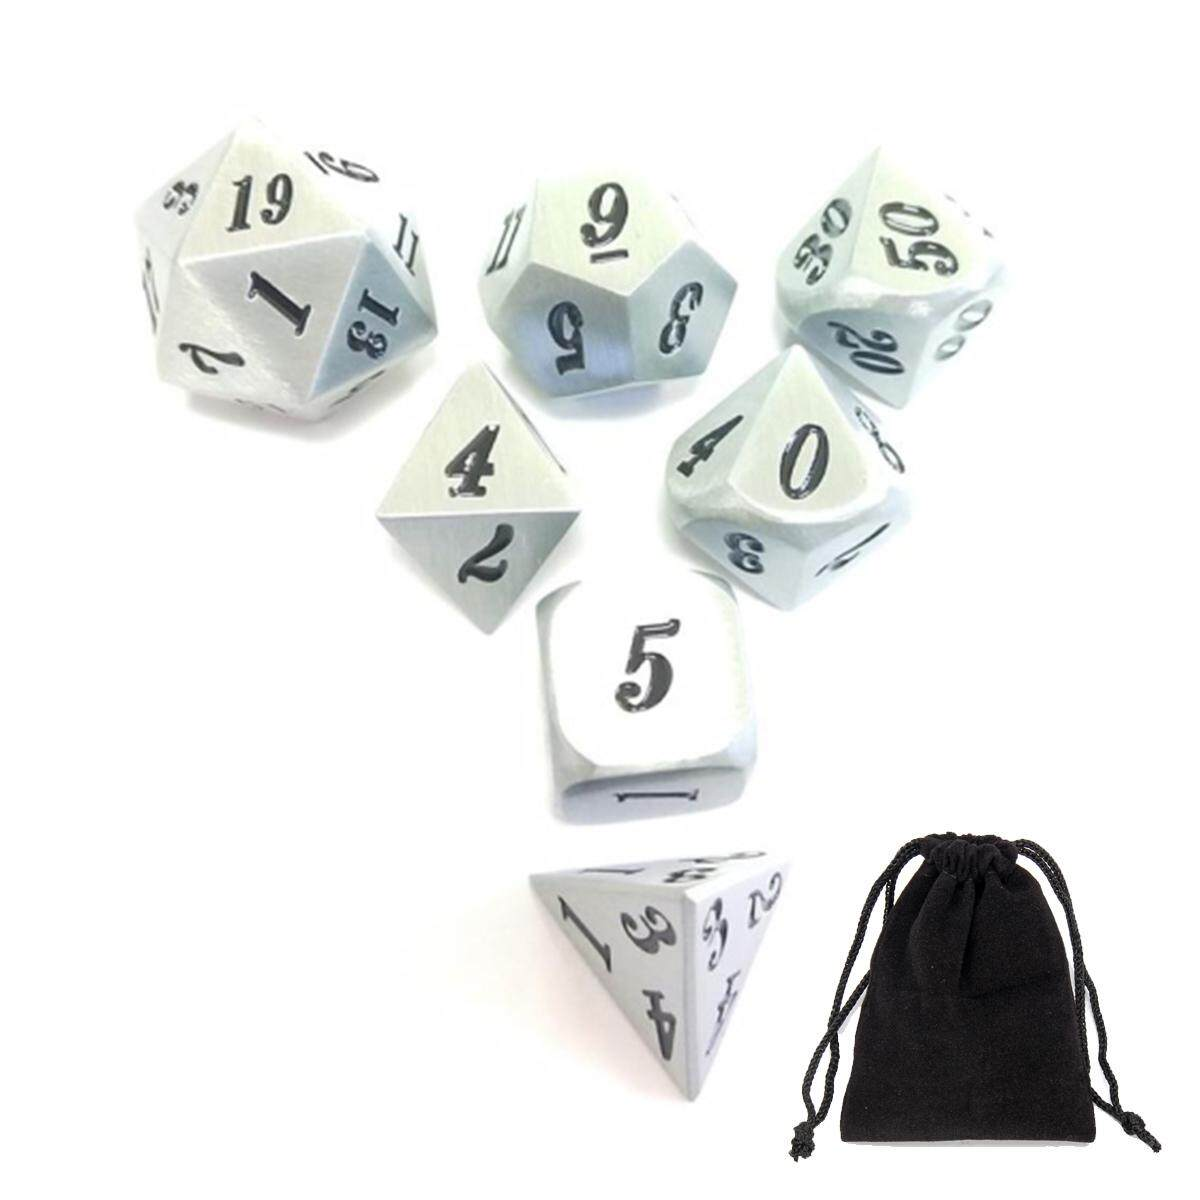 7Pcs/set Antique Metal Polyhedral Dice DND RPG MTG Role Playing Game With Bag